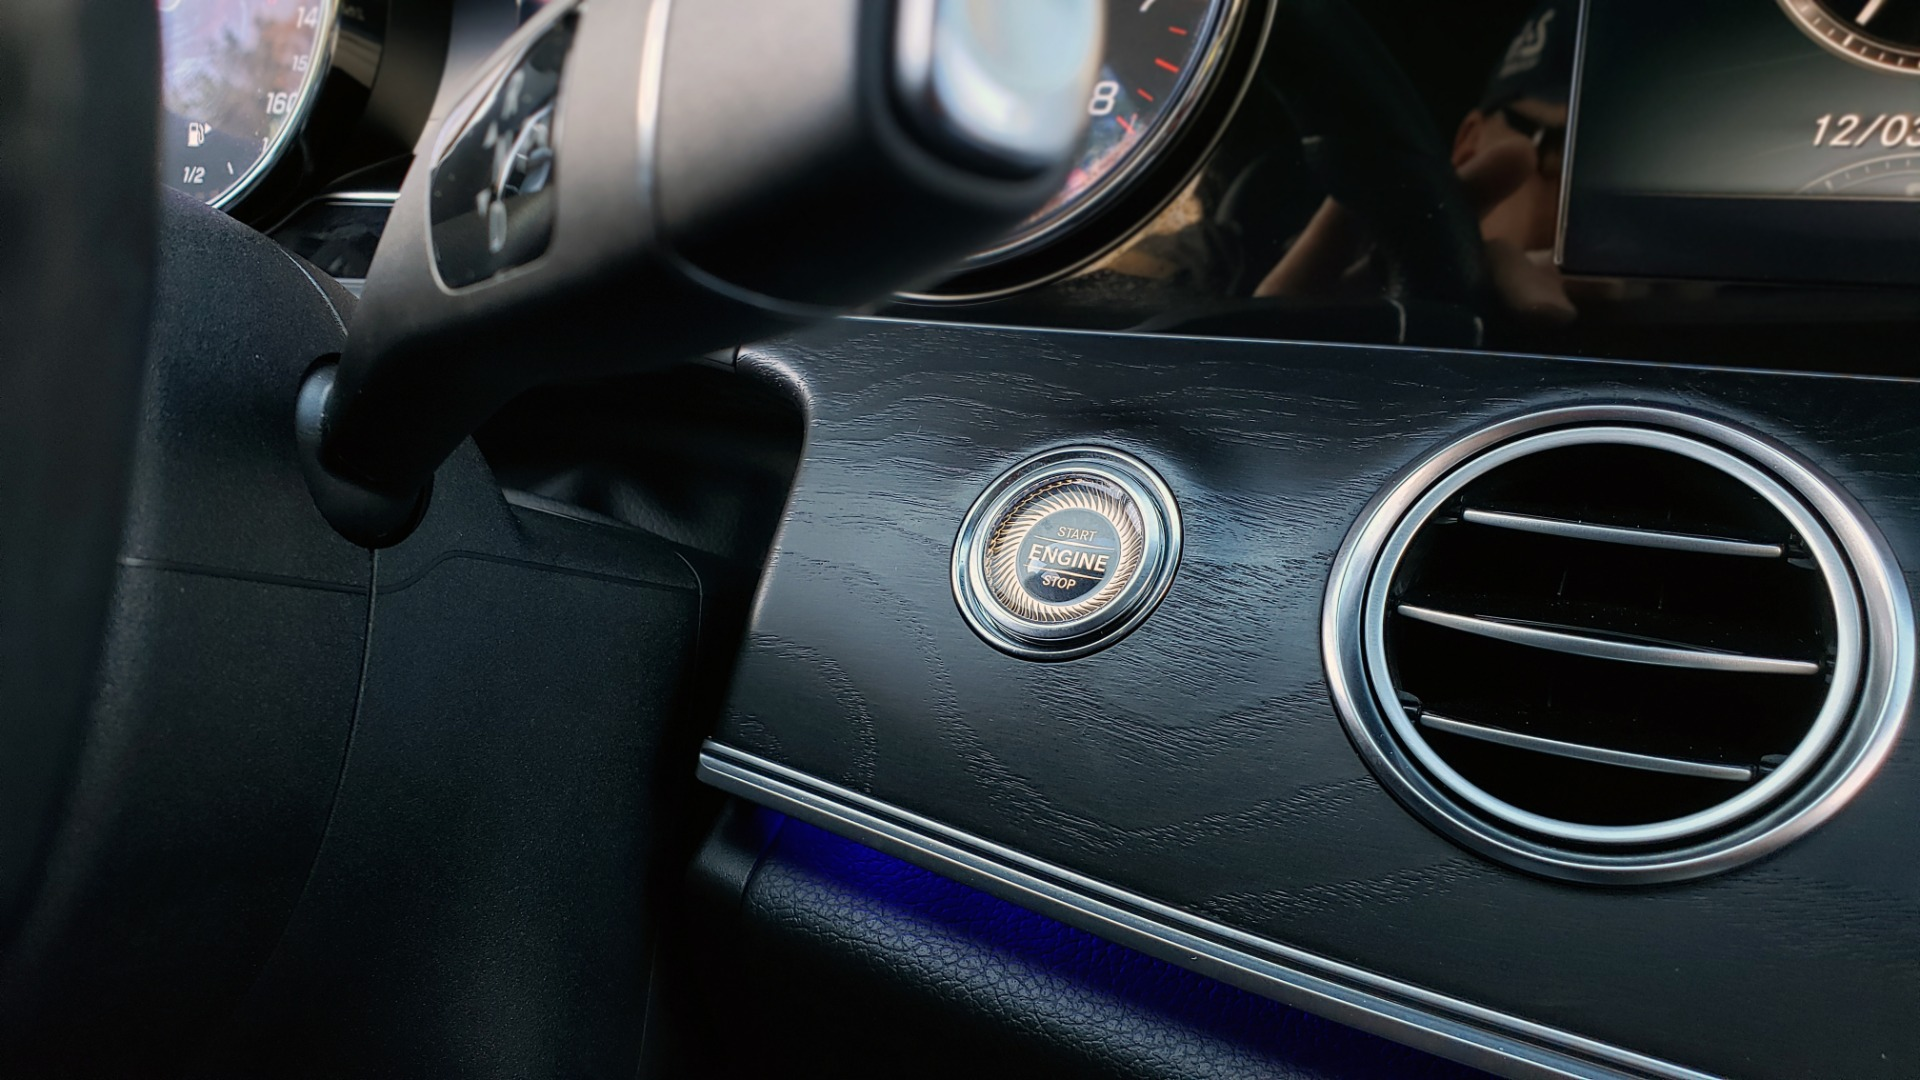 Used 2017 Mercedes-Benz E-CLASS E 300 PREMIUM / NAV / SUNROOF / BURMESTER / HTD STS / REARVIEW for sale $29,995 at Formula Imports in Charlotte NC 28227 48